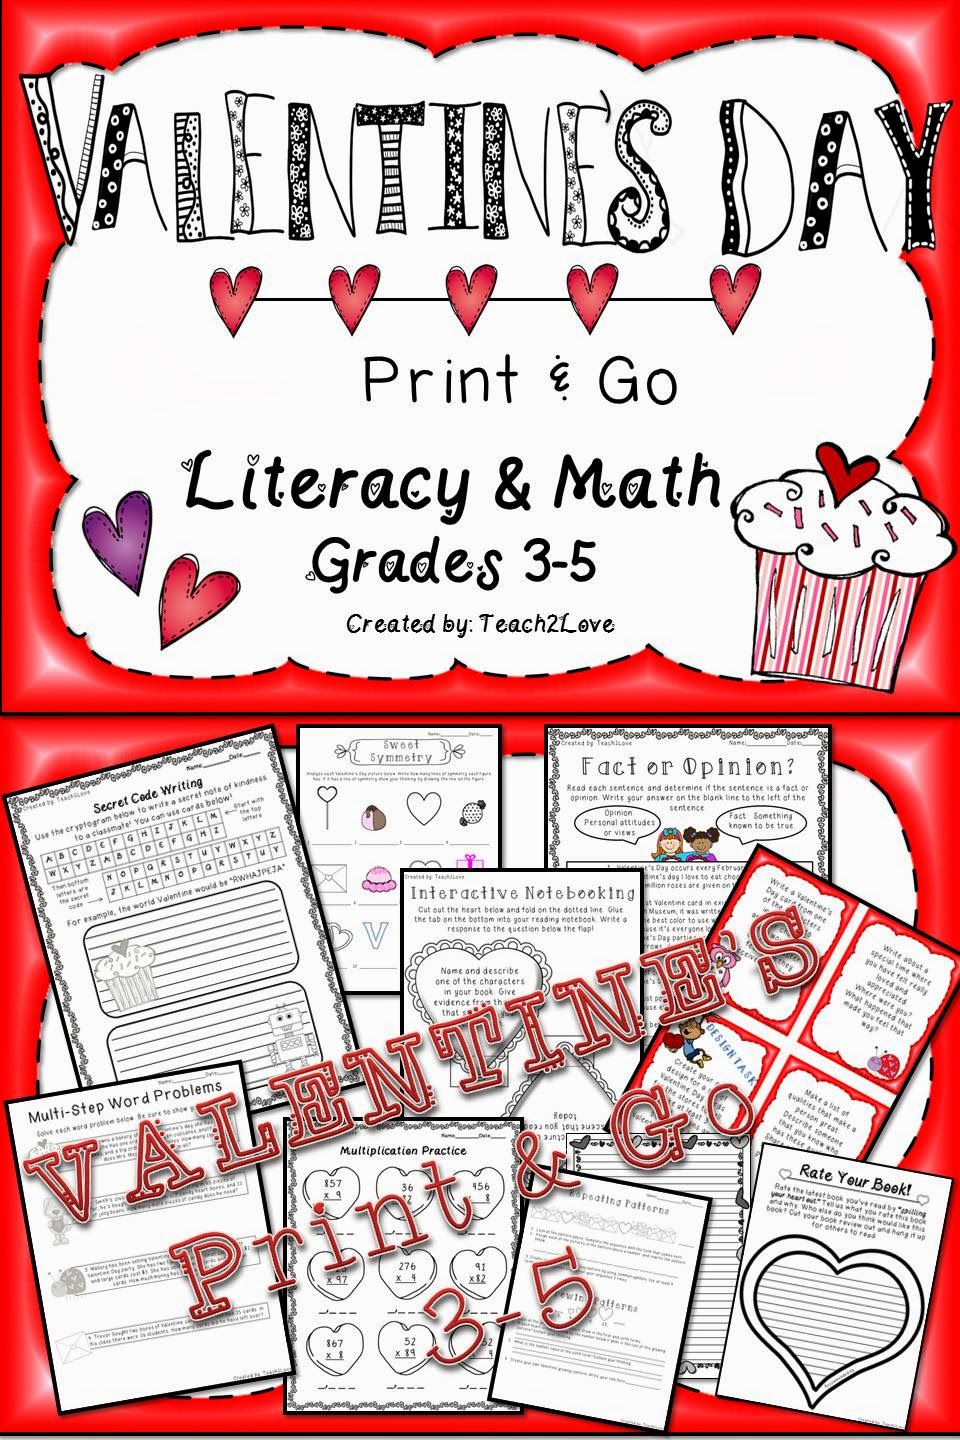 http://www.teacherspayteachers.com/Product/Valentines-Day-Literacy-Math-Print-and-Go-Activities-1097710